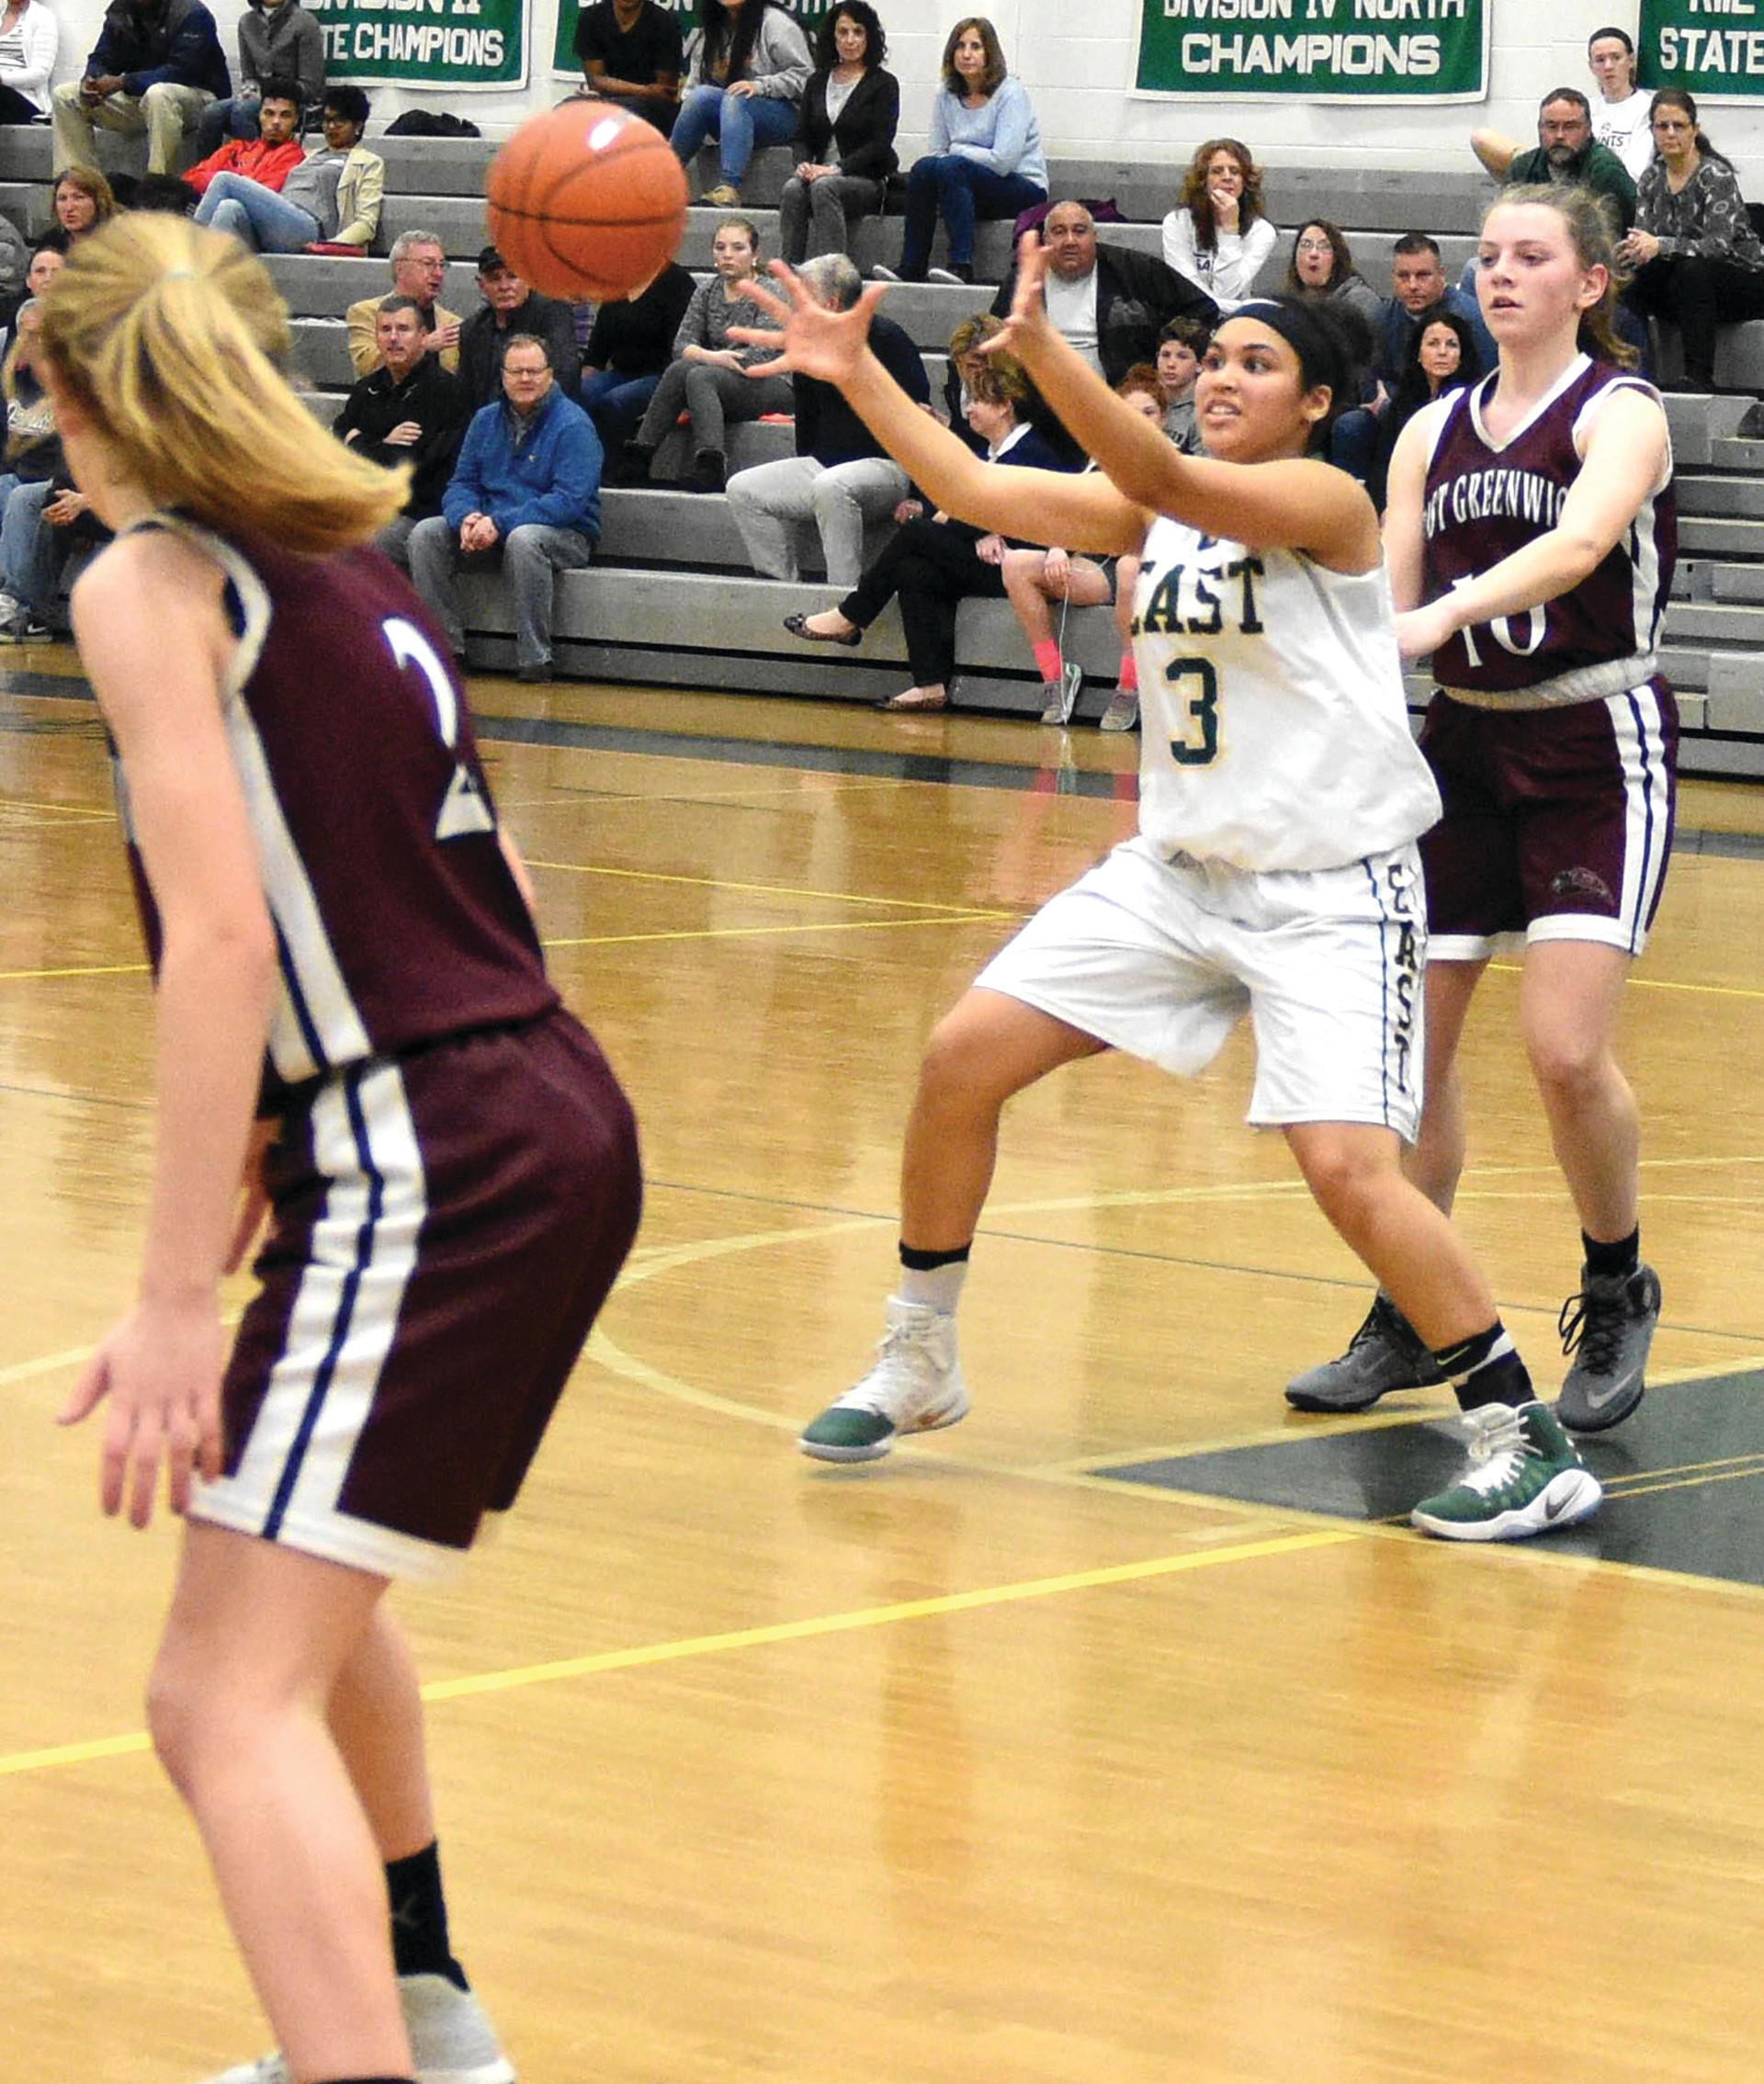 Tatyana Correia receives a pass near the free throw line on Friday night.